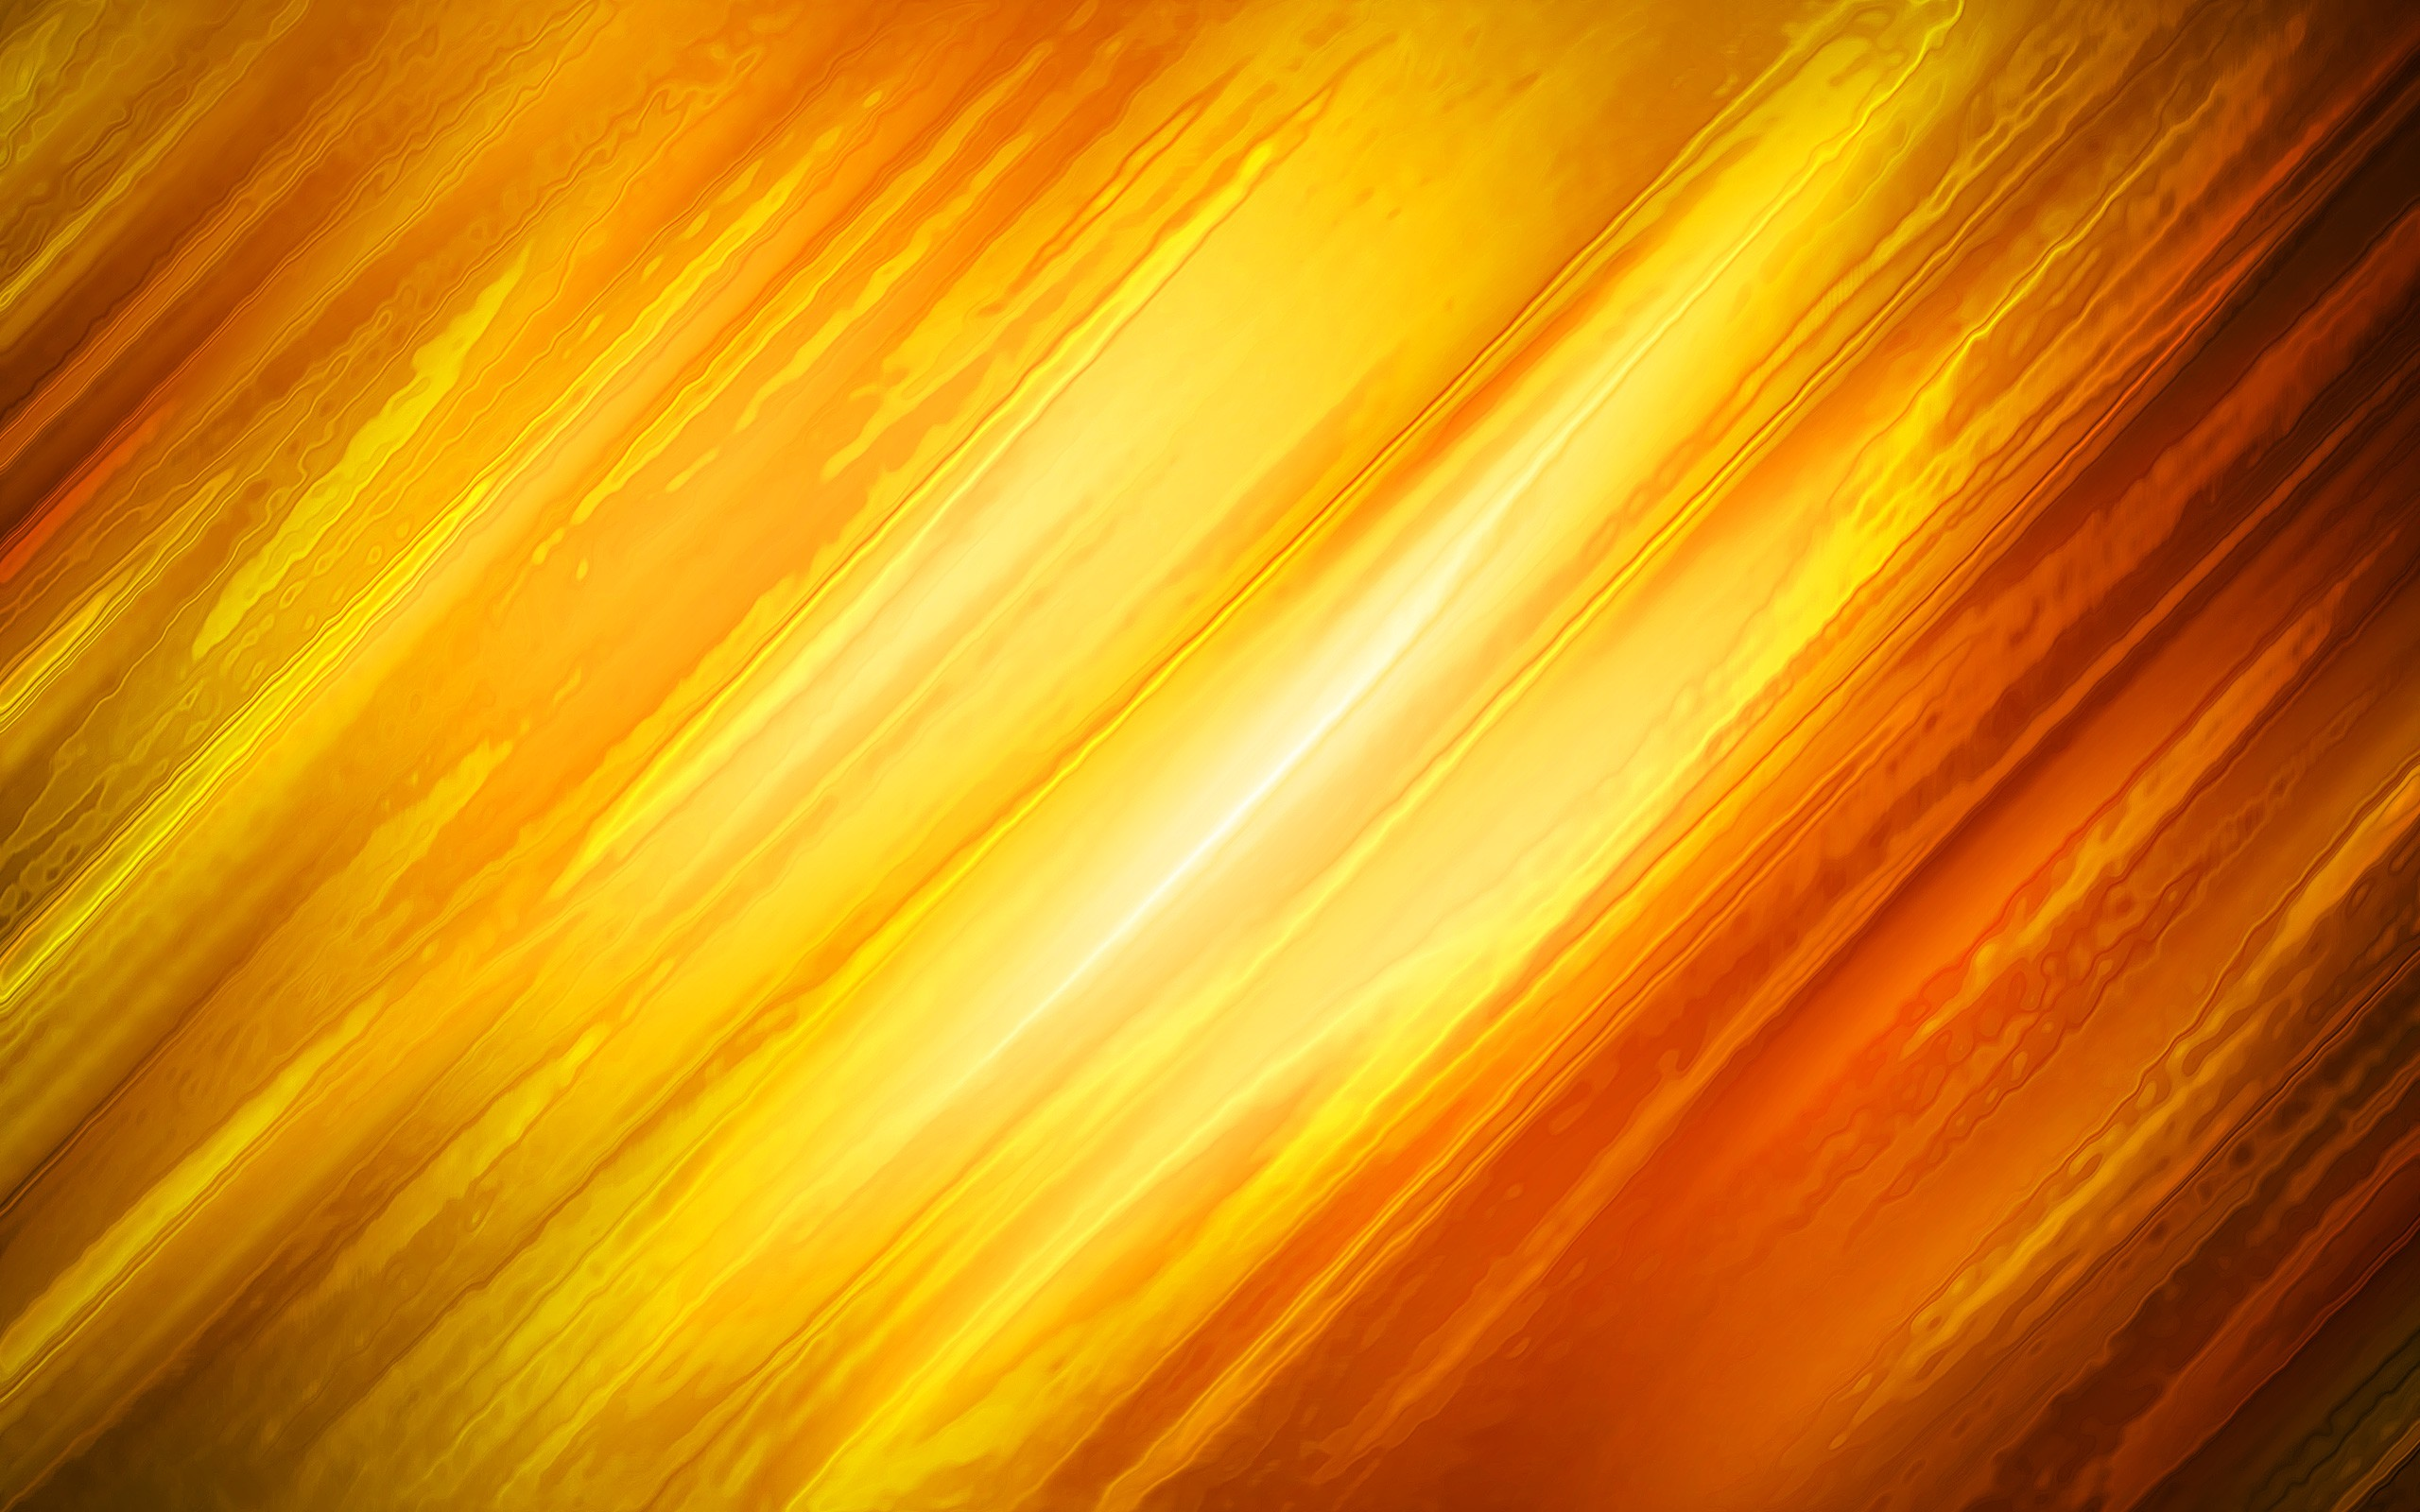 Abstract Yellow And Orange Background Desktop PC And Mac Wallpaper